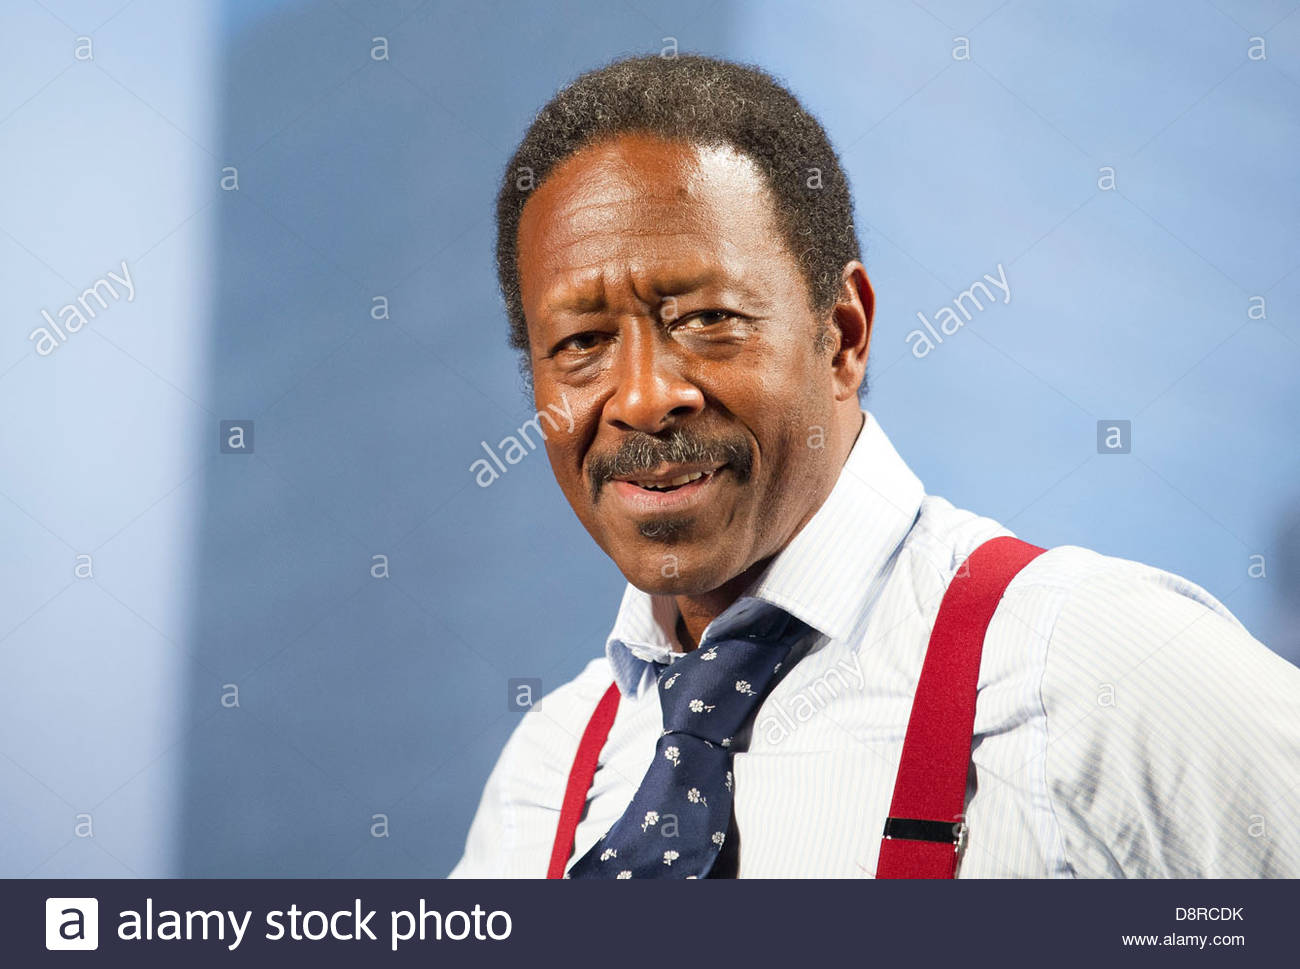 Clarke Peters Stock Photos & Clarke Peters Stock Images - Alamy